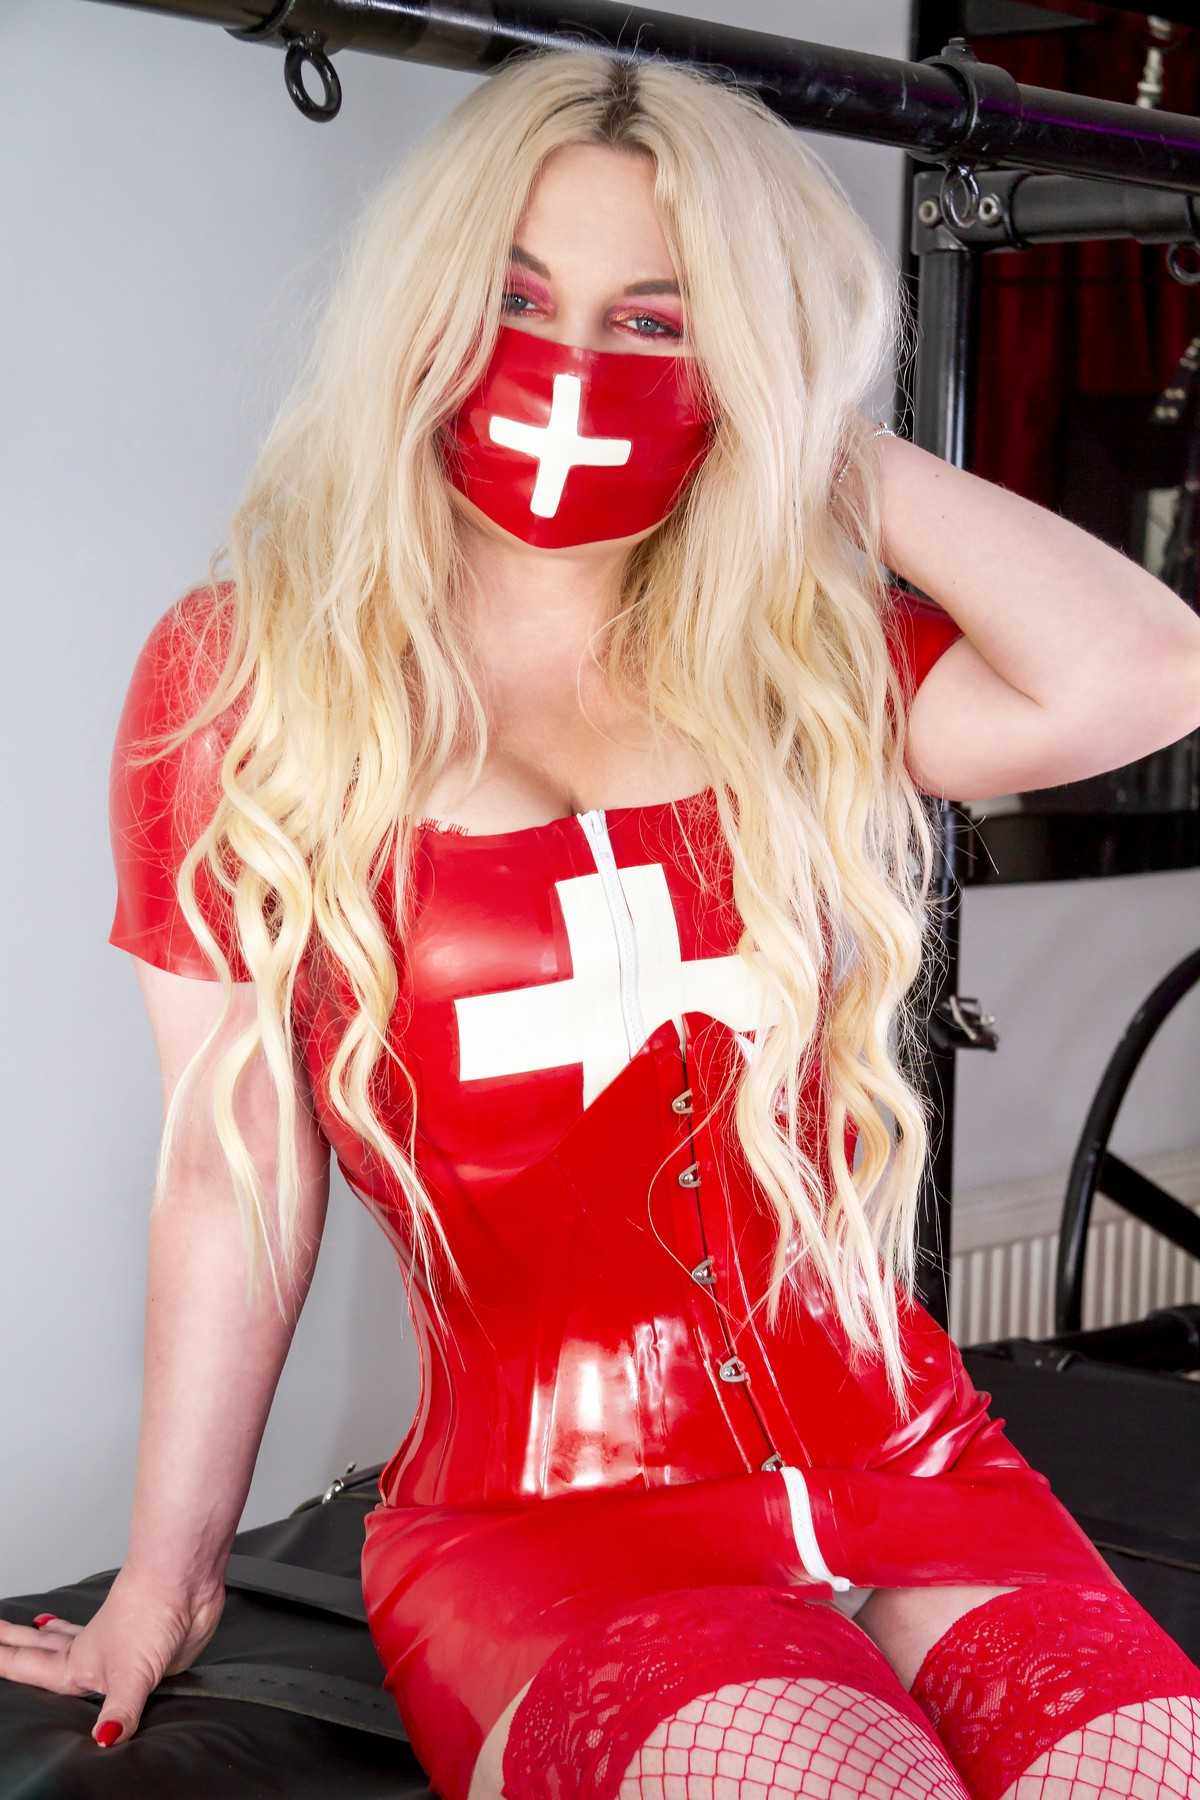 medical fetish play Mistress wearing red latex medical outfit